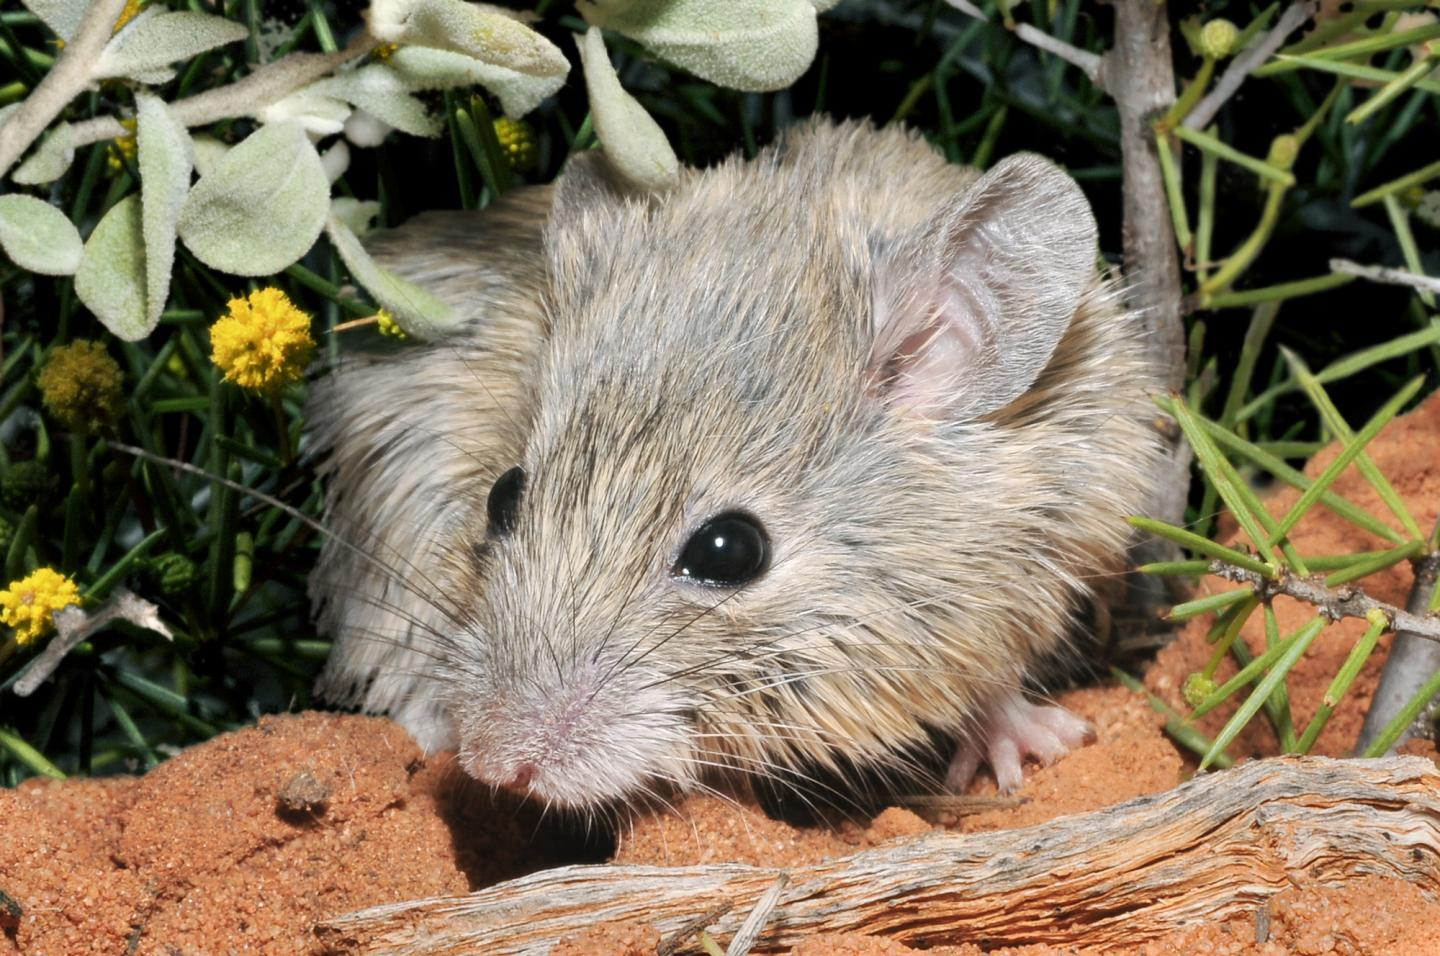 Close-up of a furry, grey and beige mouse with round ears standing on red dirt.